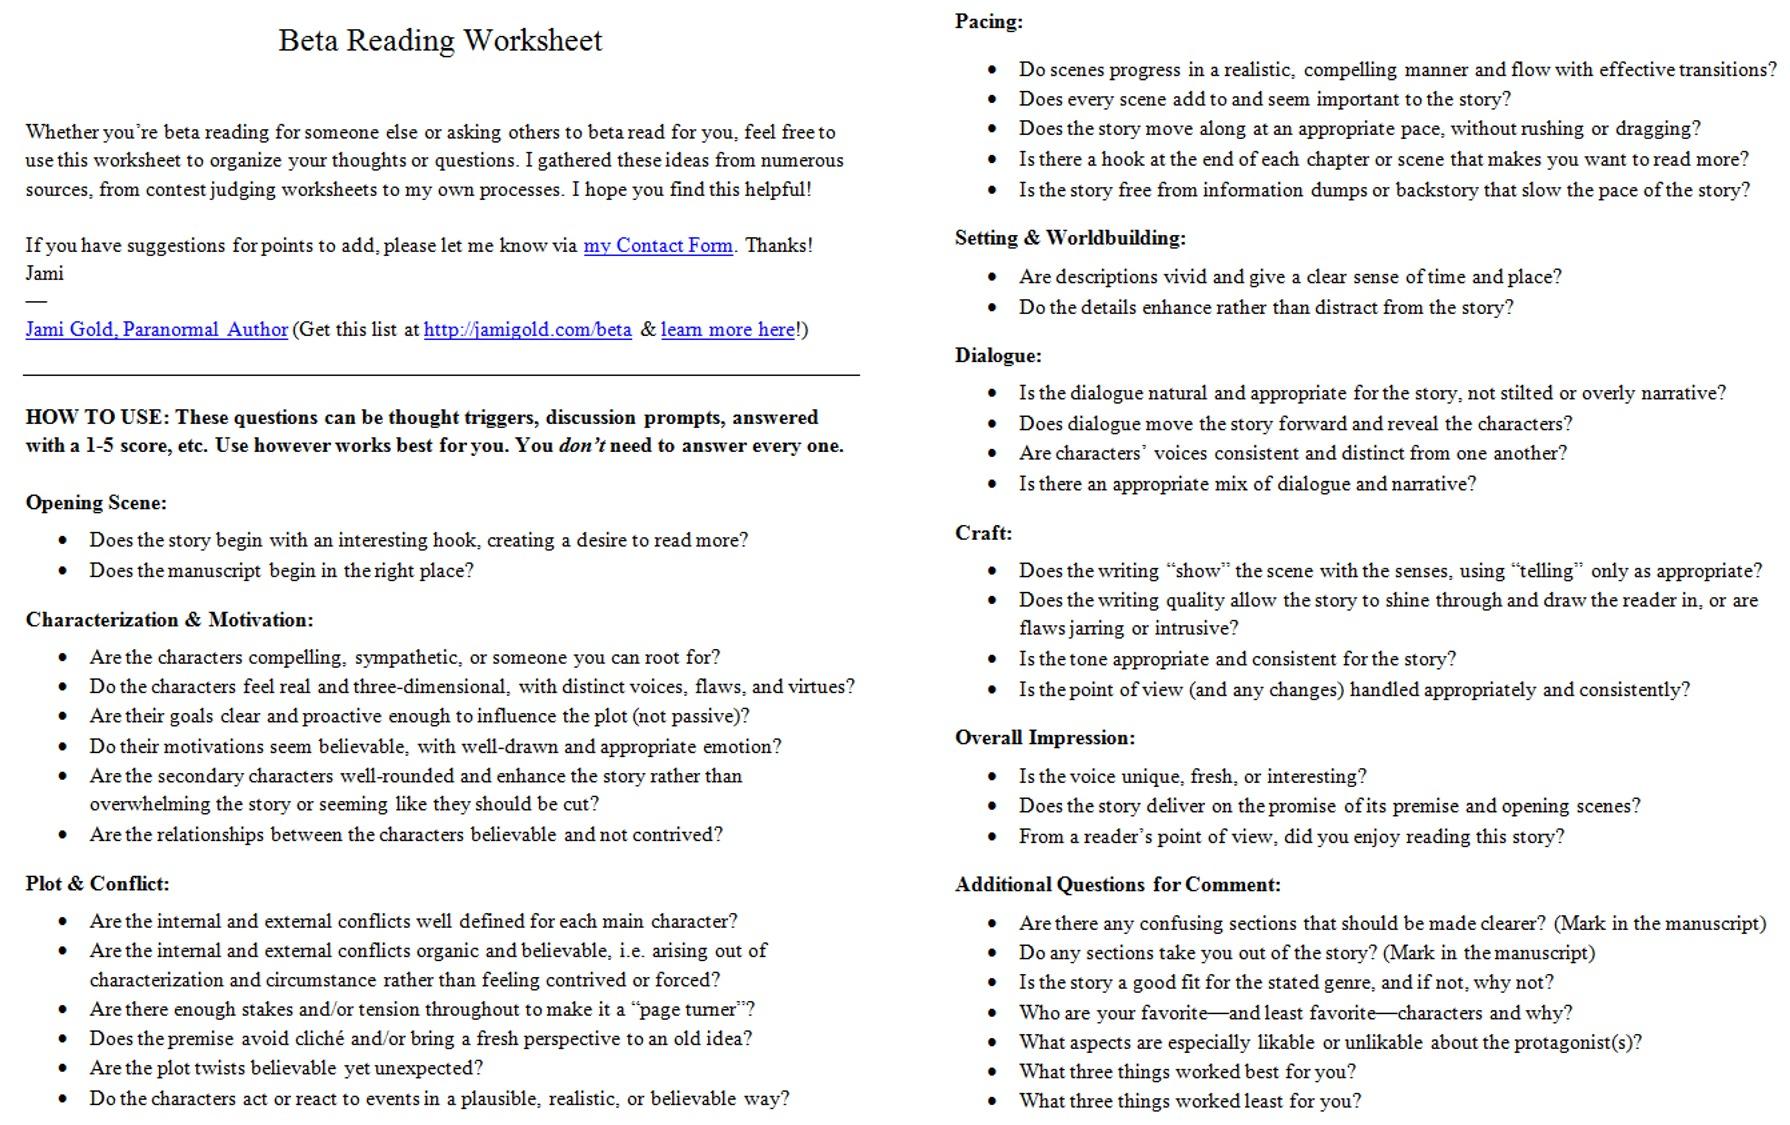 Proatmealus  Marvelous Worksheets For Writers  Jami Gold Paranormal Author With Exquisite Screen Shot Of The Twopage Beta Reading Worksheet With Archaic Novel Study Worksheets Also D Nealian Worksheets Printable In Addition Free Slope Worksheets And Blank Map Of The World Worksheet As Well As Px Fit Test Worksheet Additionally Number  Worksheets For Preschoolers From Jamigoldcom With Proatmealus  Exquisite Worksheets For Writers  Jami Gold Paranormal Author With Archaic Screen Shot Of The Twopage Beta Reading Worksheet And Marvelous Novel Study Worksheets Also D Nealian Worksheets Printable In Addition Free Slope Worksheets From Jamigoldcom